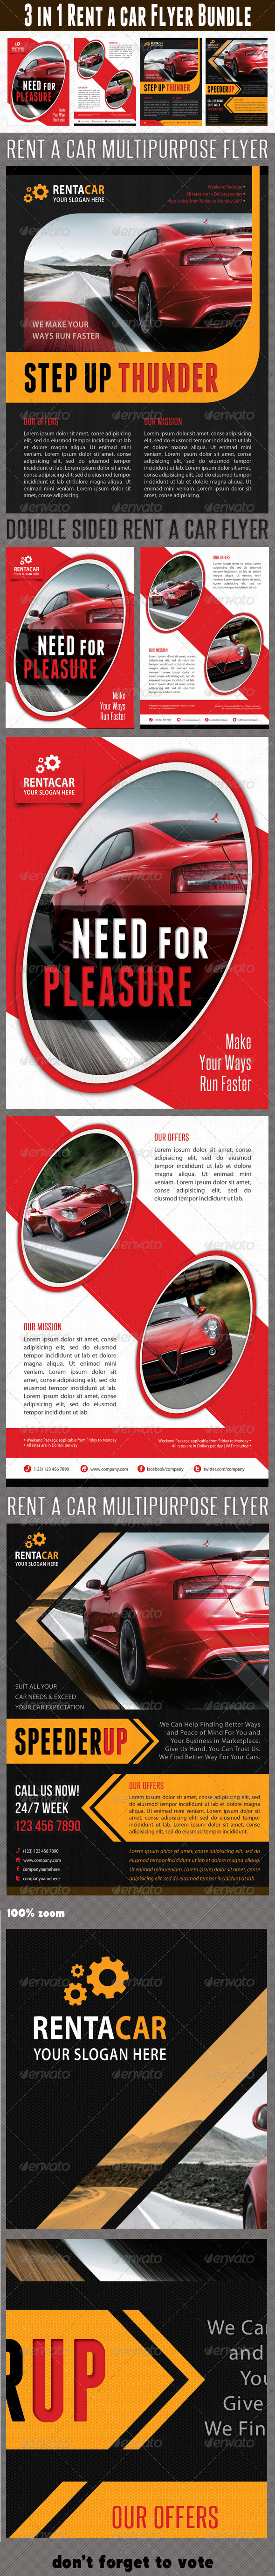 GraphicRiver 3 in 1 Rent A Car Flyer Bundle 02 6685425